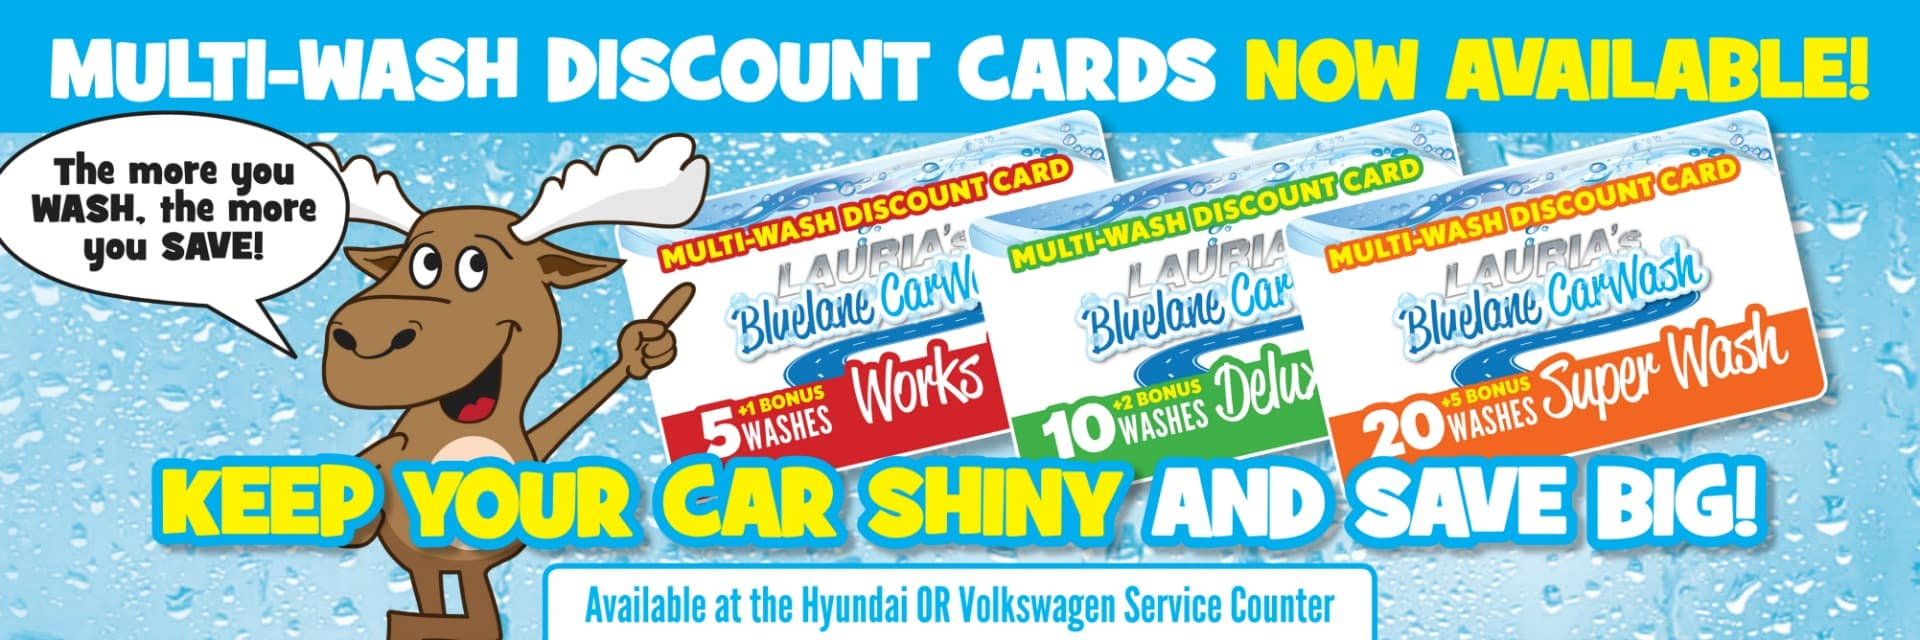 multi wash discount card